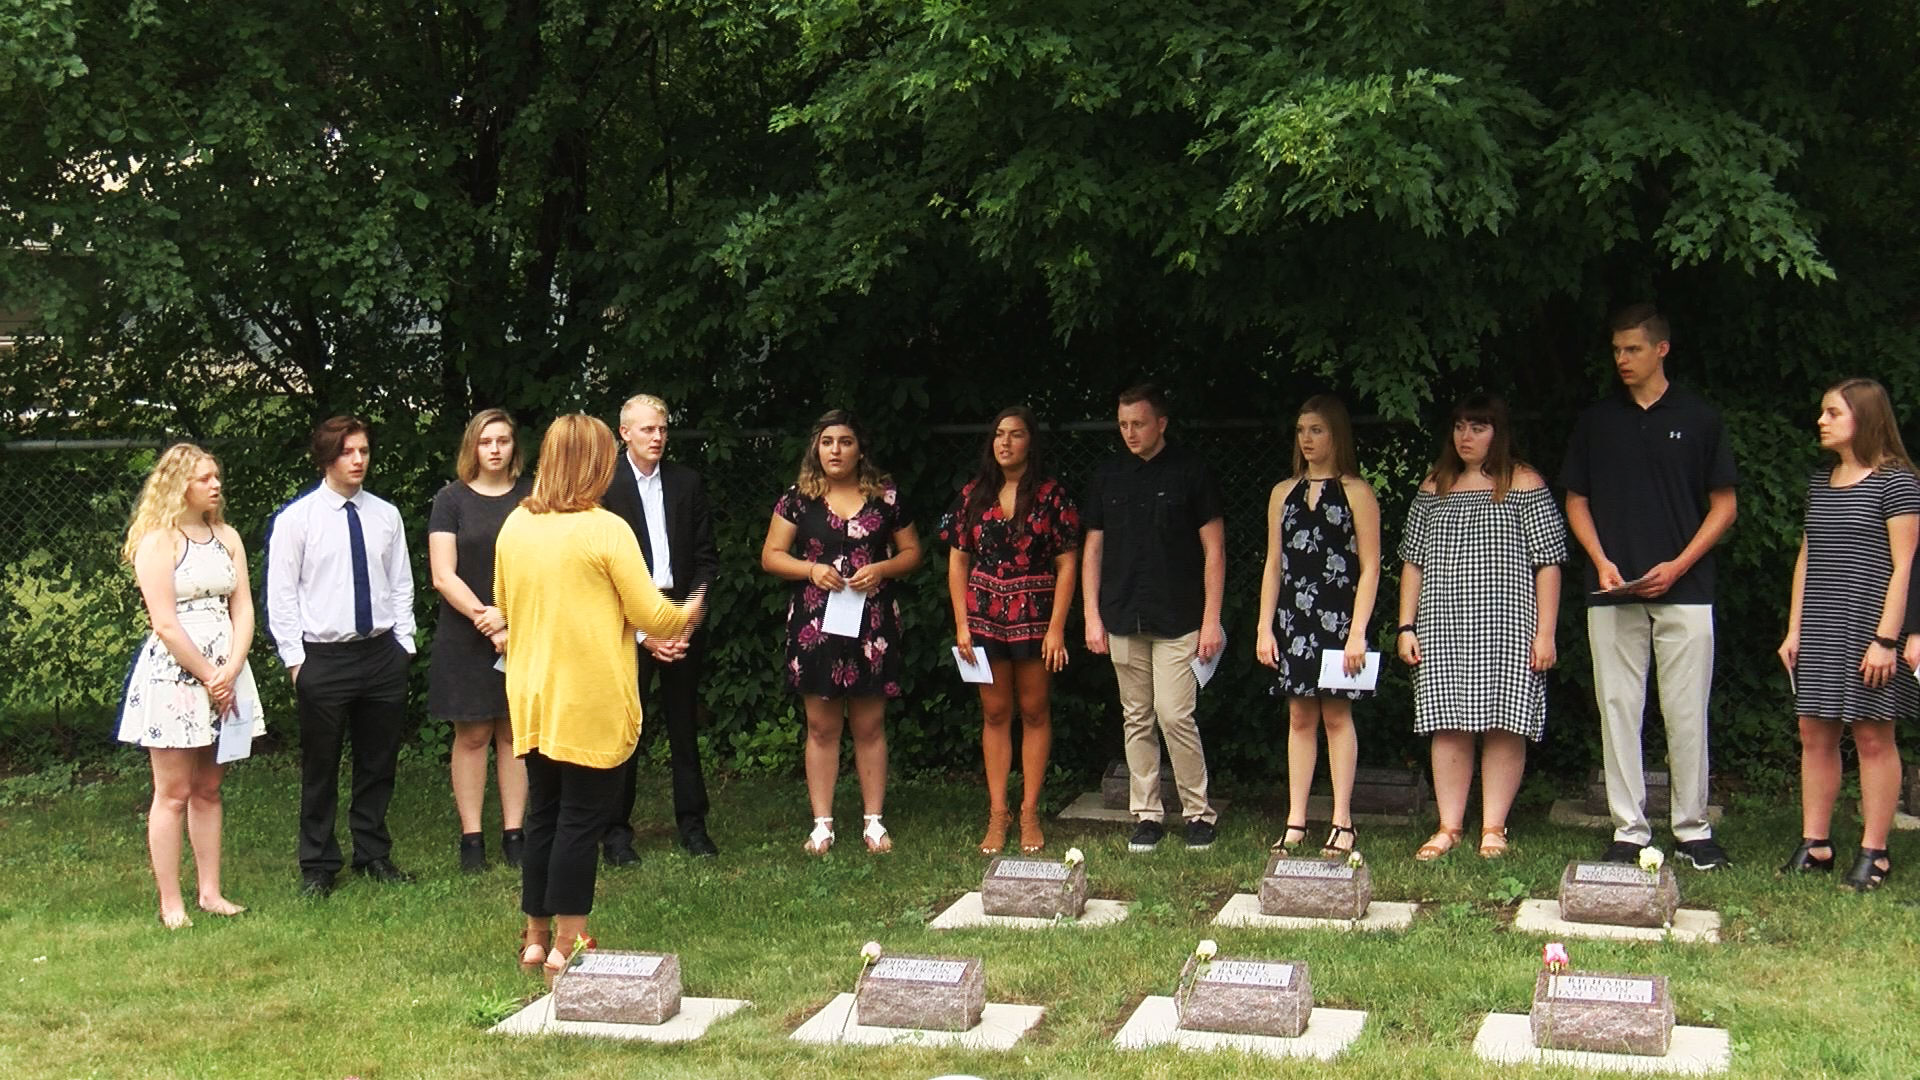 Woodlawn Cemetery Mystery Children Burial